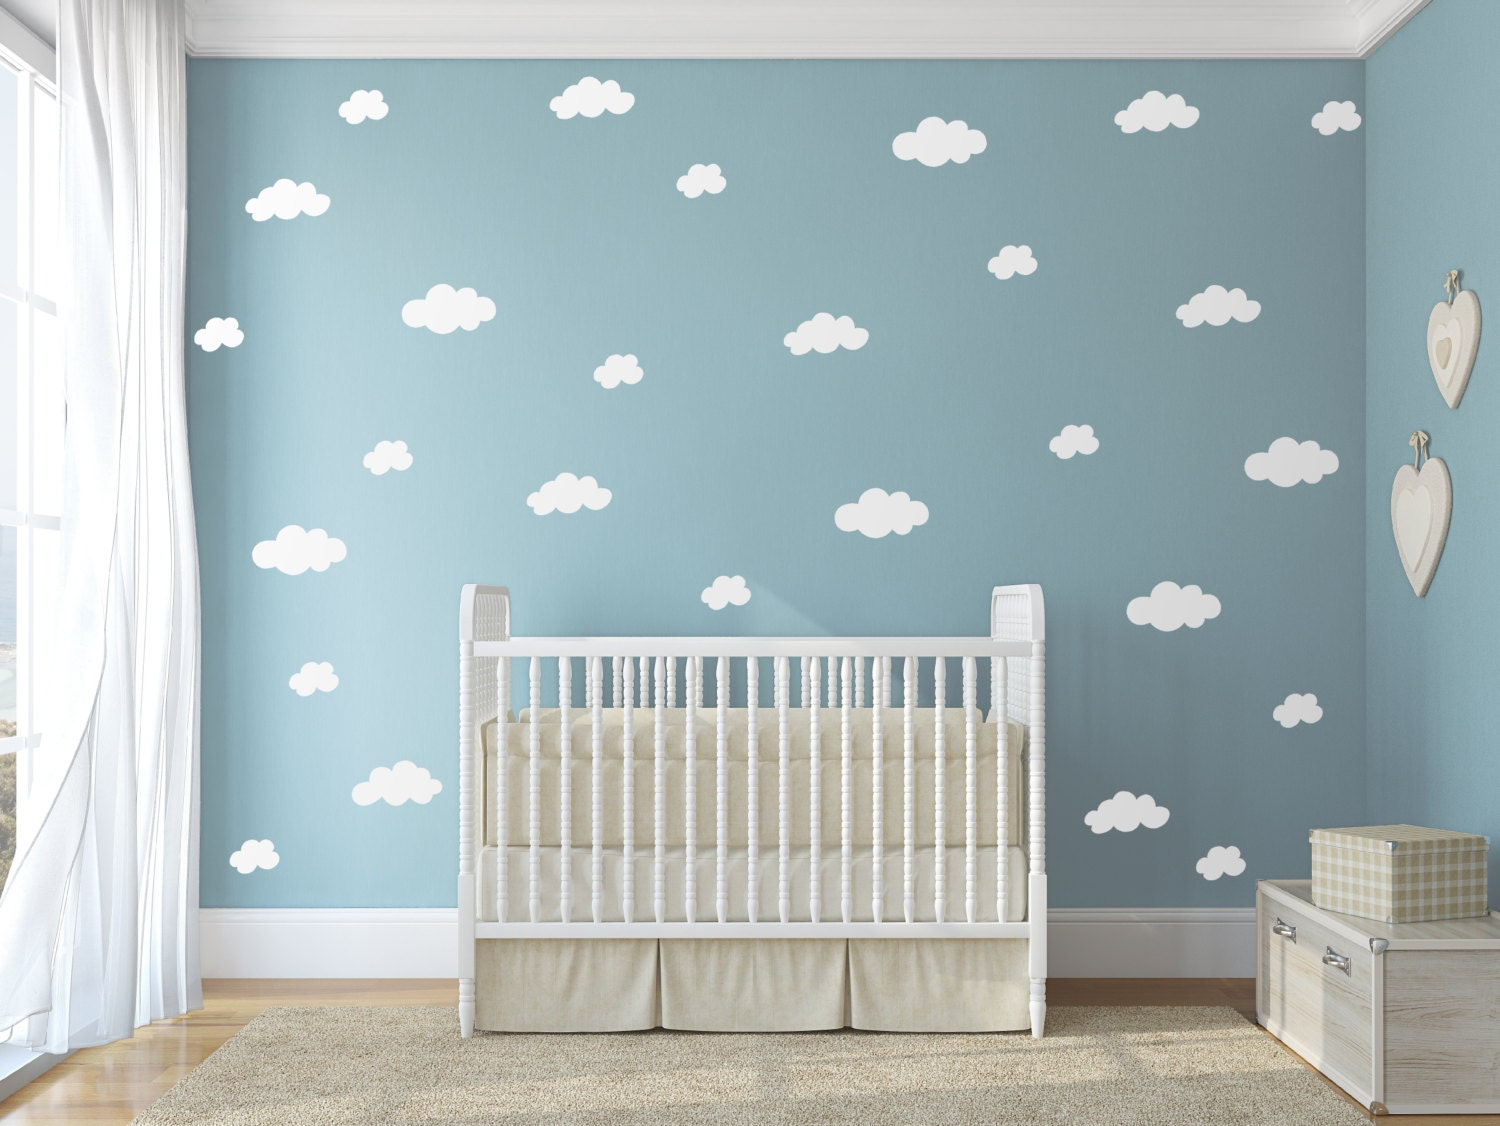 White Cloud Decals Wall Decor Vinyl Wall Decor Stickers Etsy